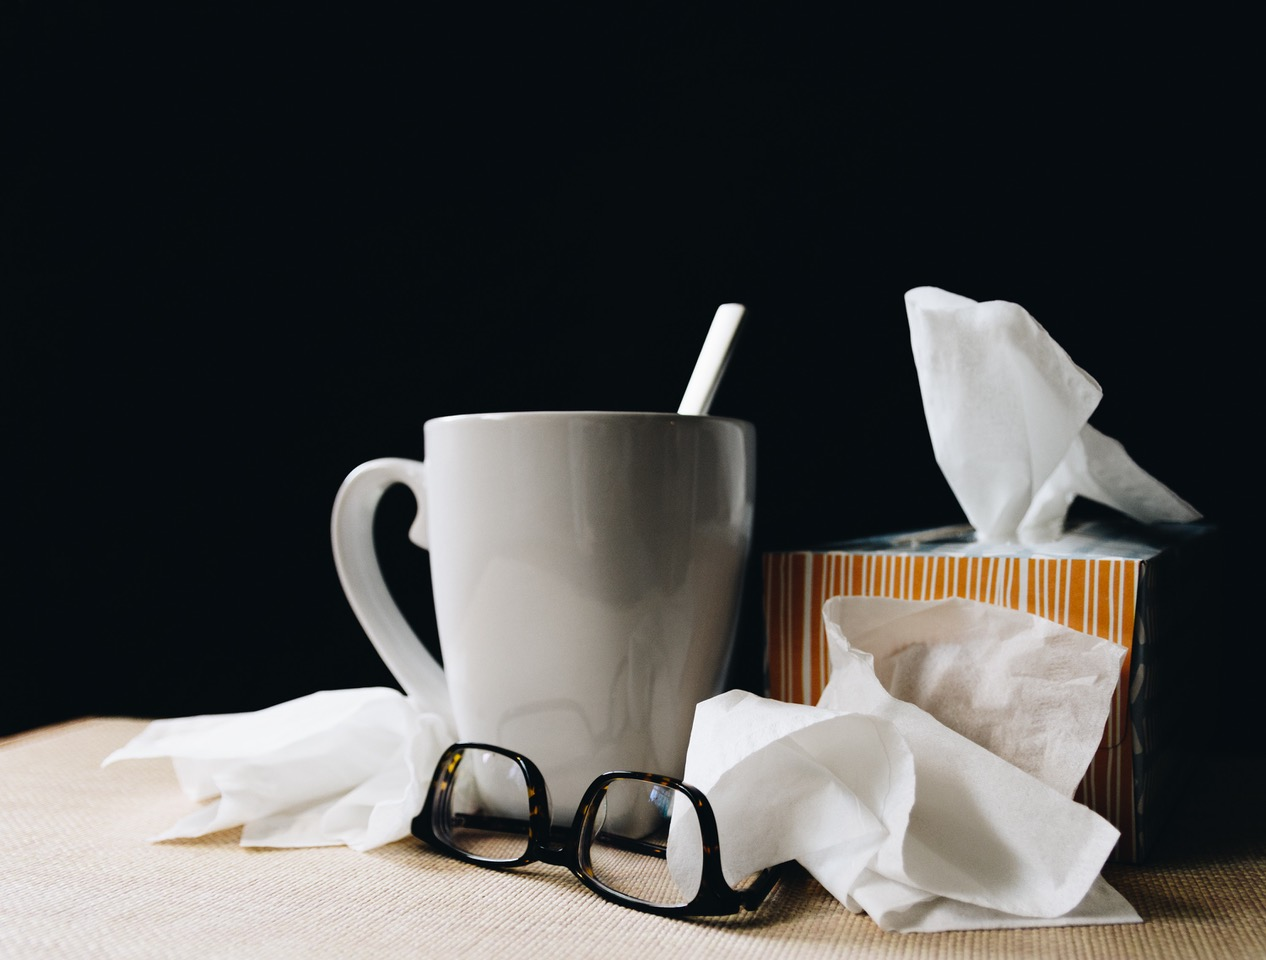 Can You Prevent The Flu?